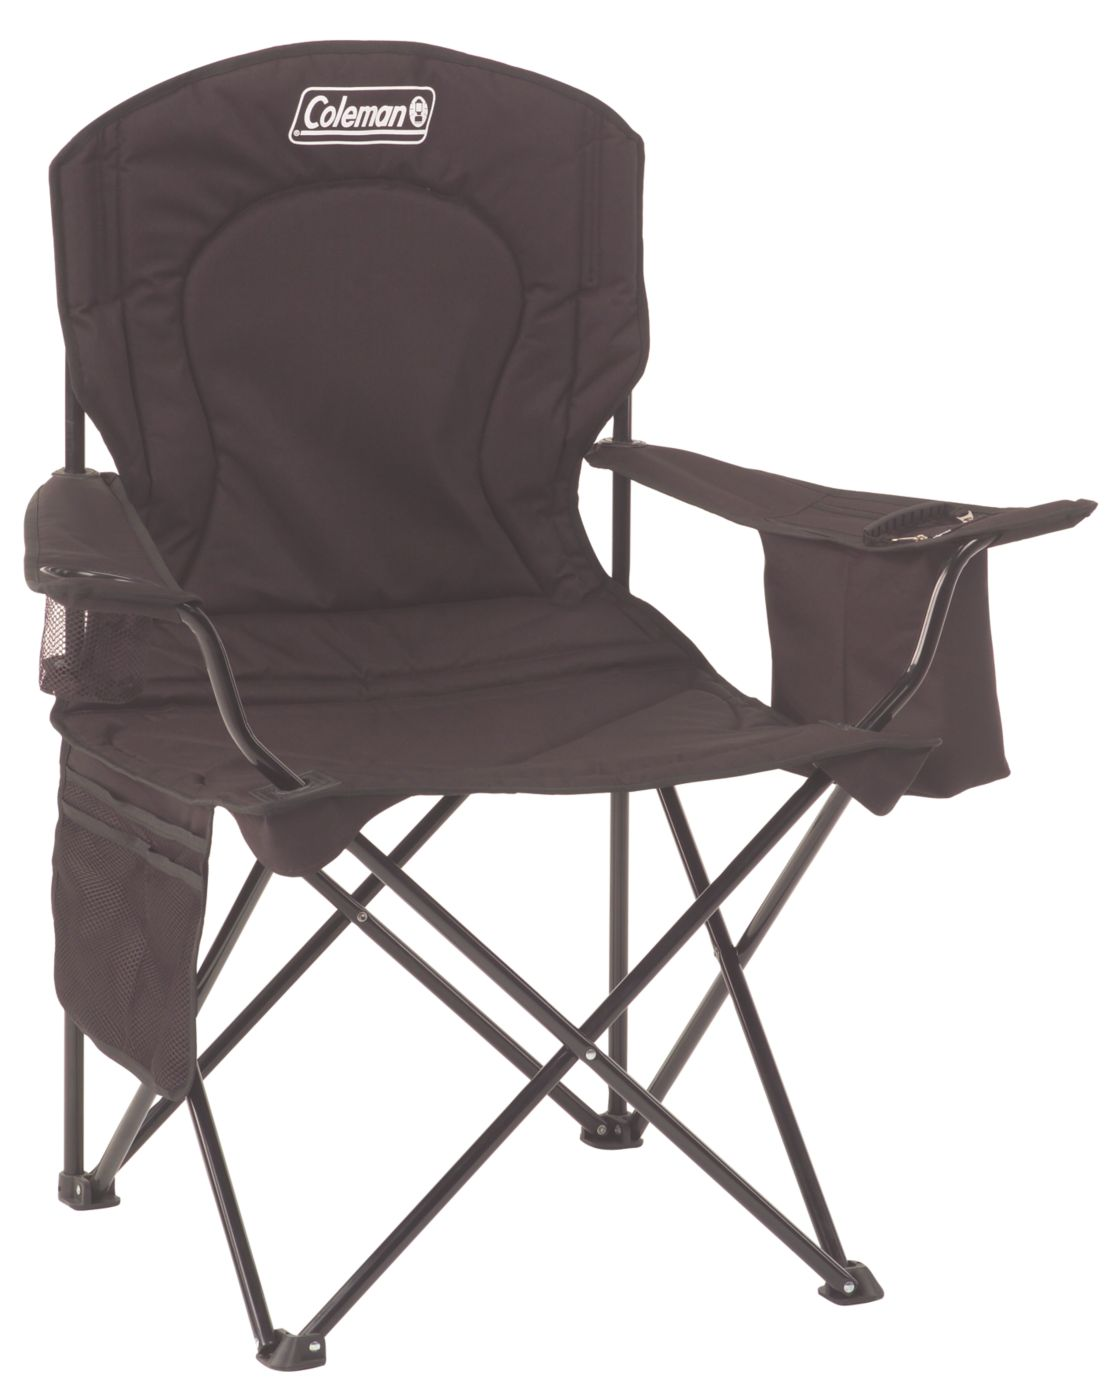 folding chair parts manufacturer office mat walmart camping chairs coleman cooler quad